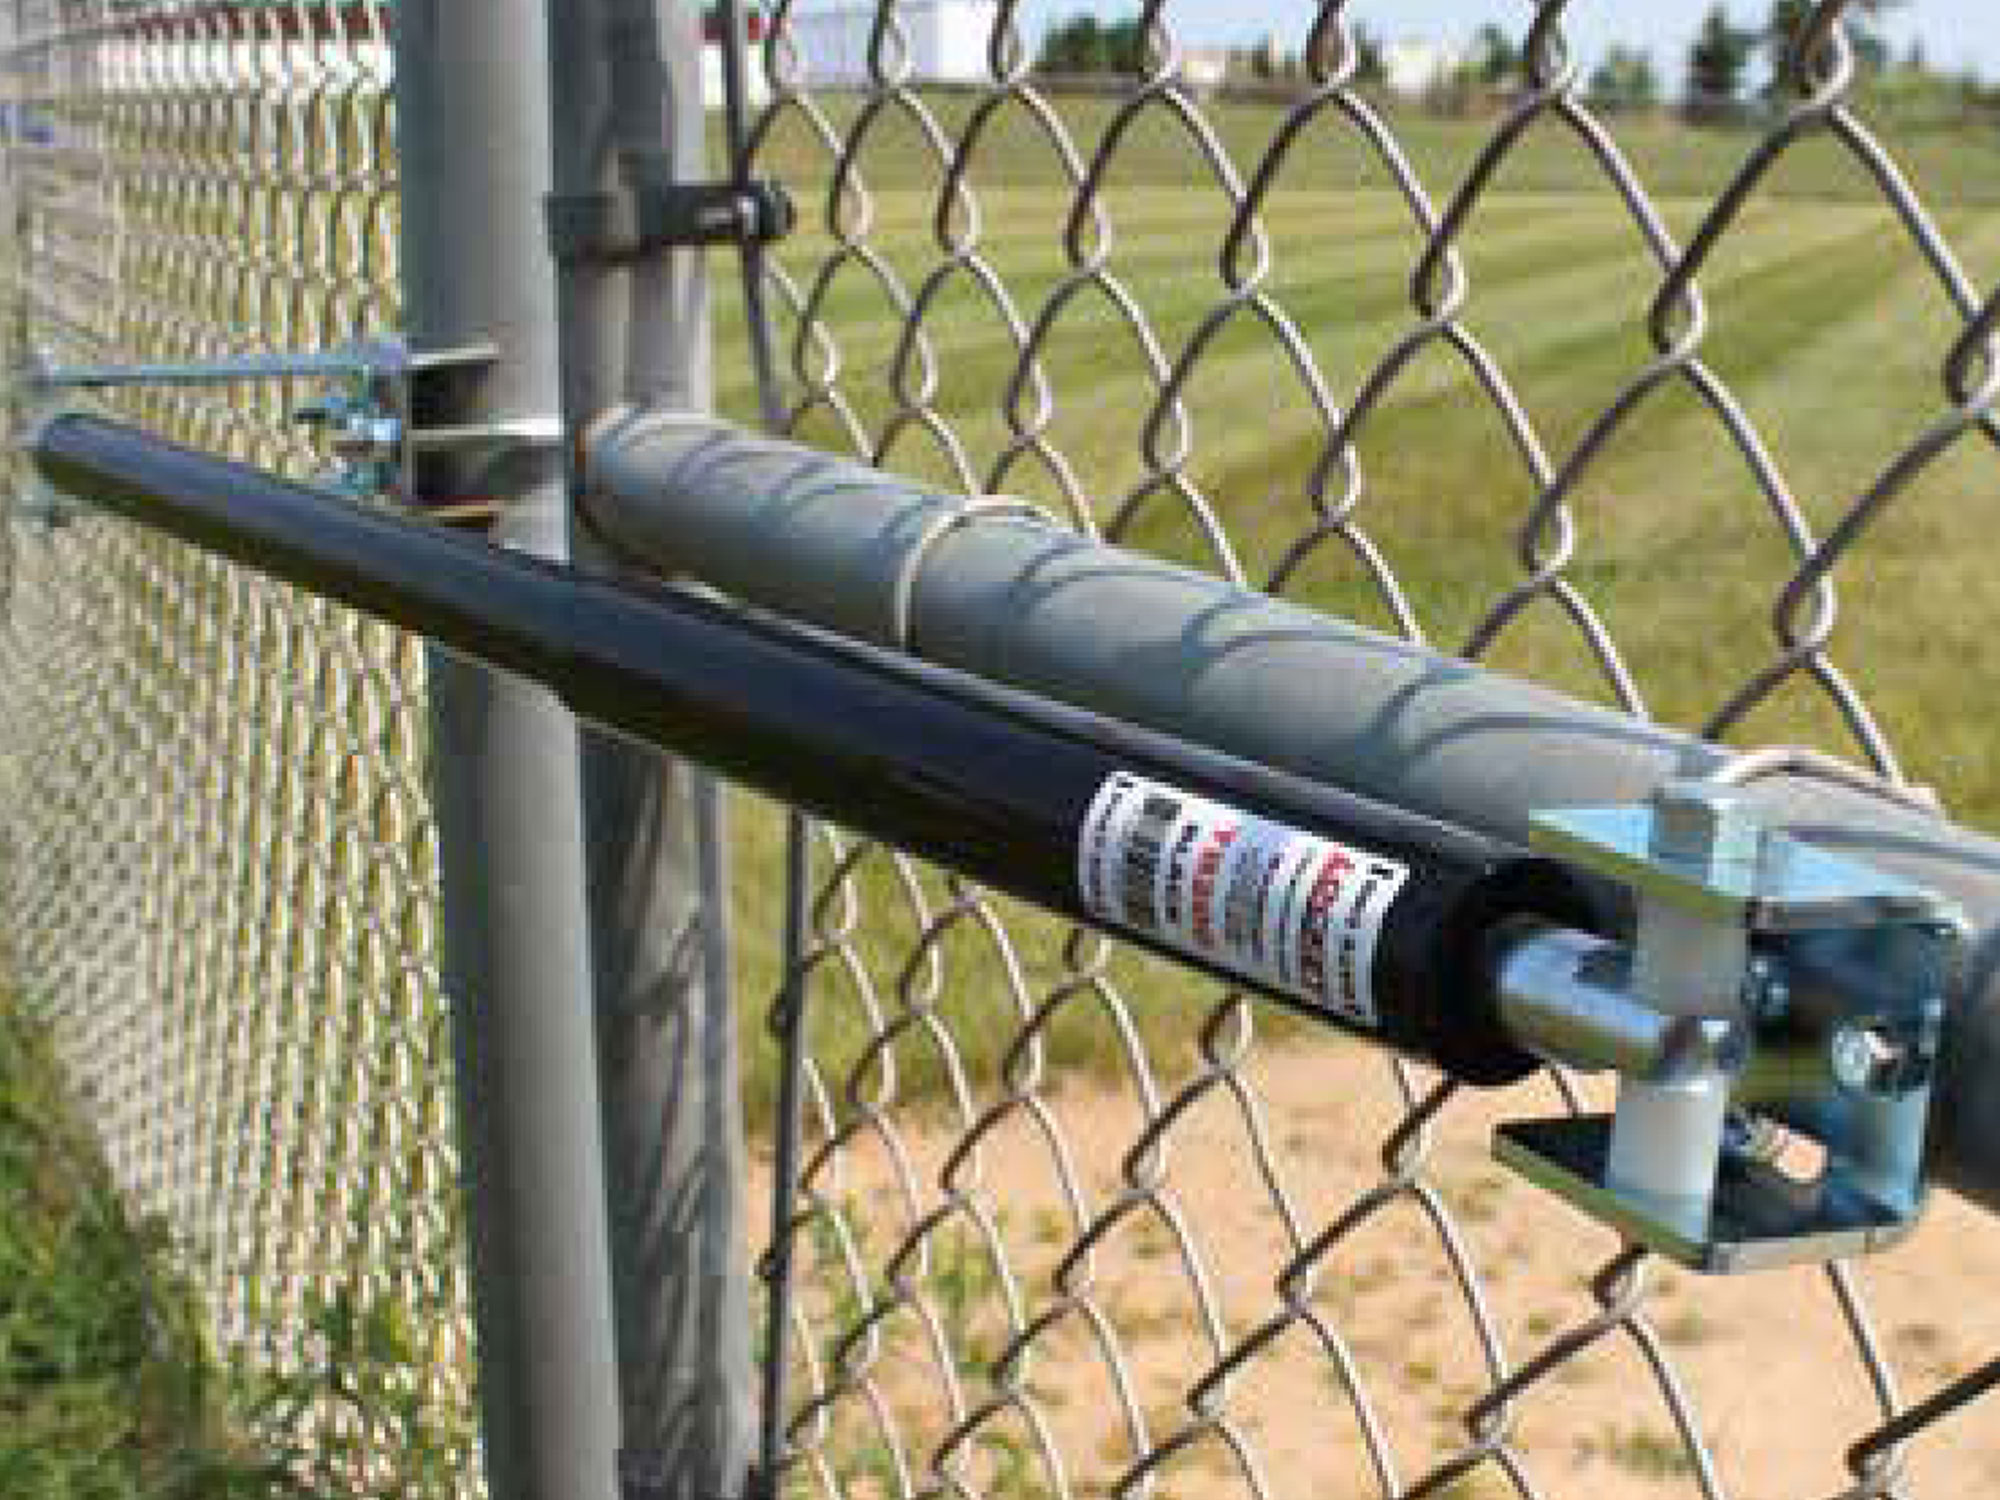 Lockey TB-LINX Mounting Kit for Chain Link Fence Gates